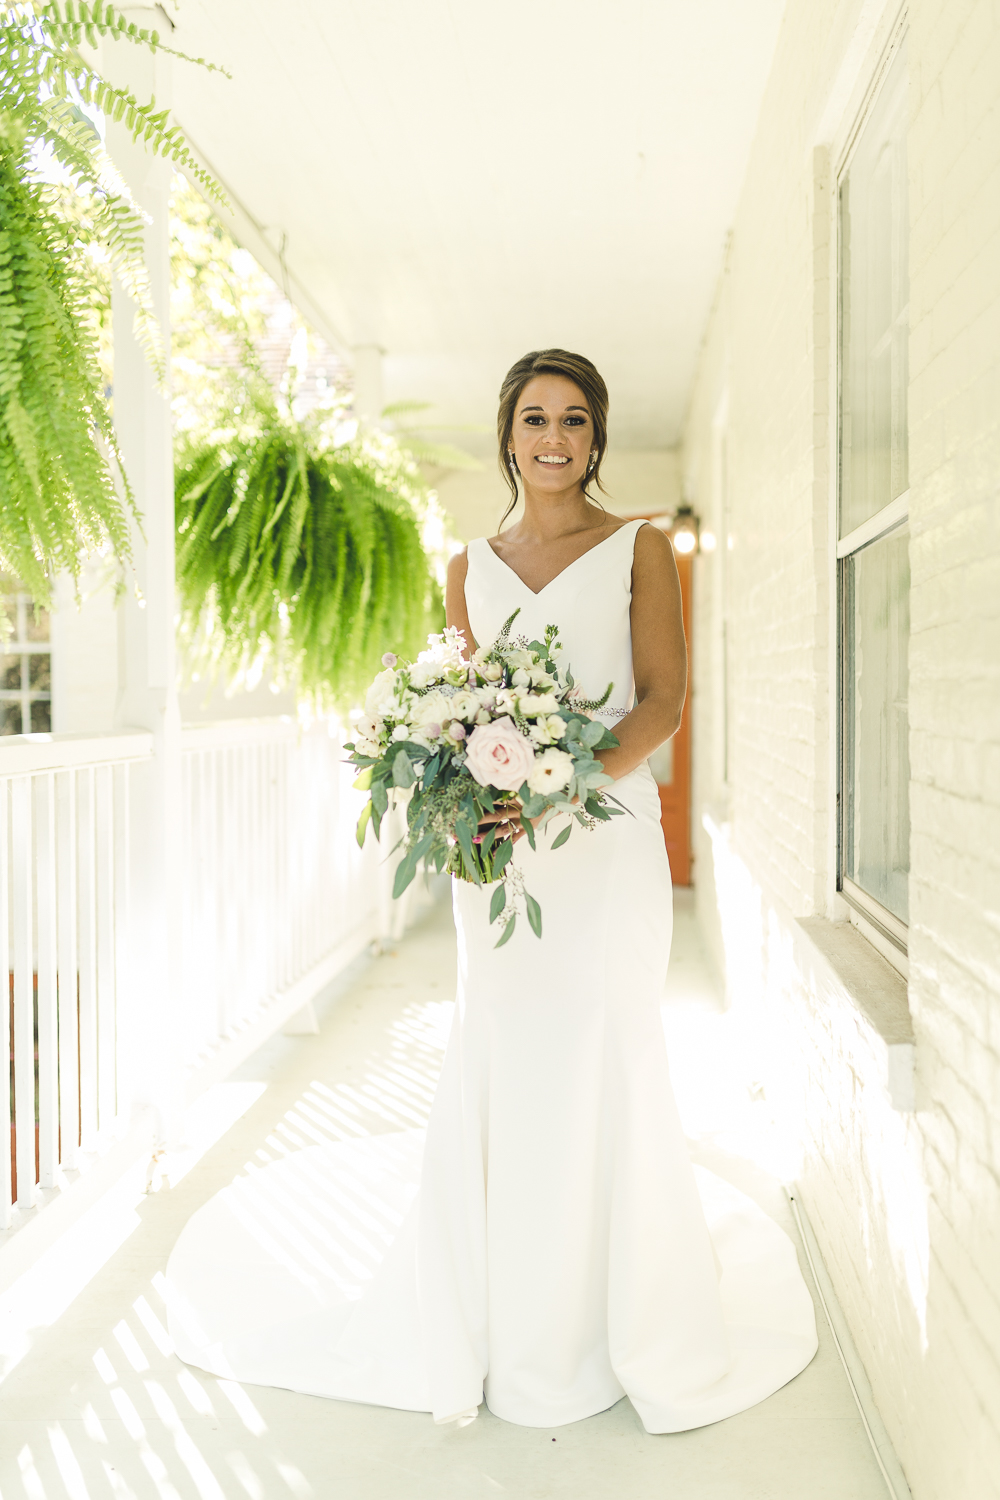 Outdoor balcony bridal portrait